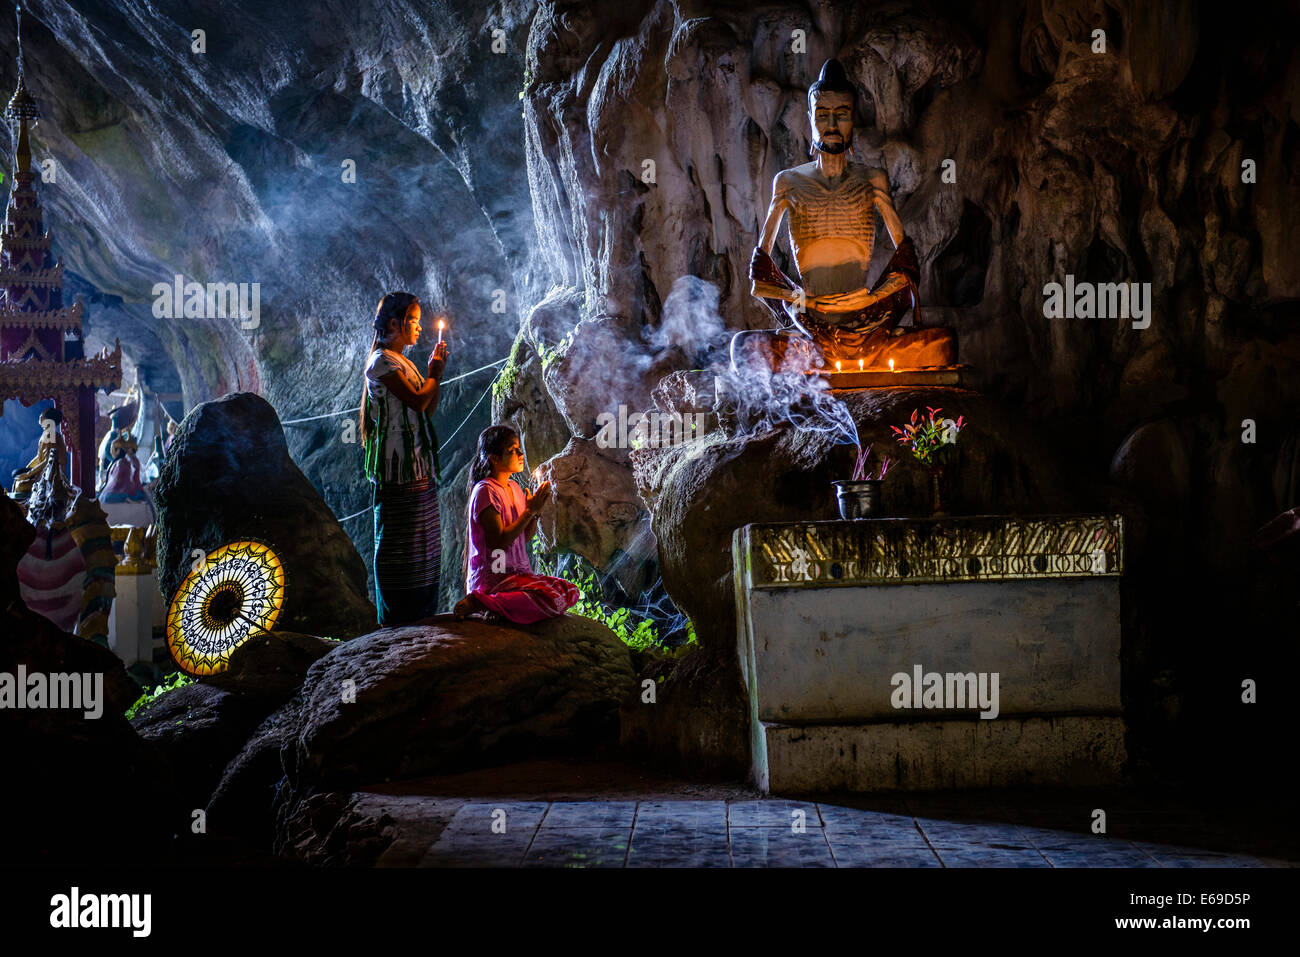 Asian girls lighting incense in temple - Stock Image